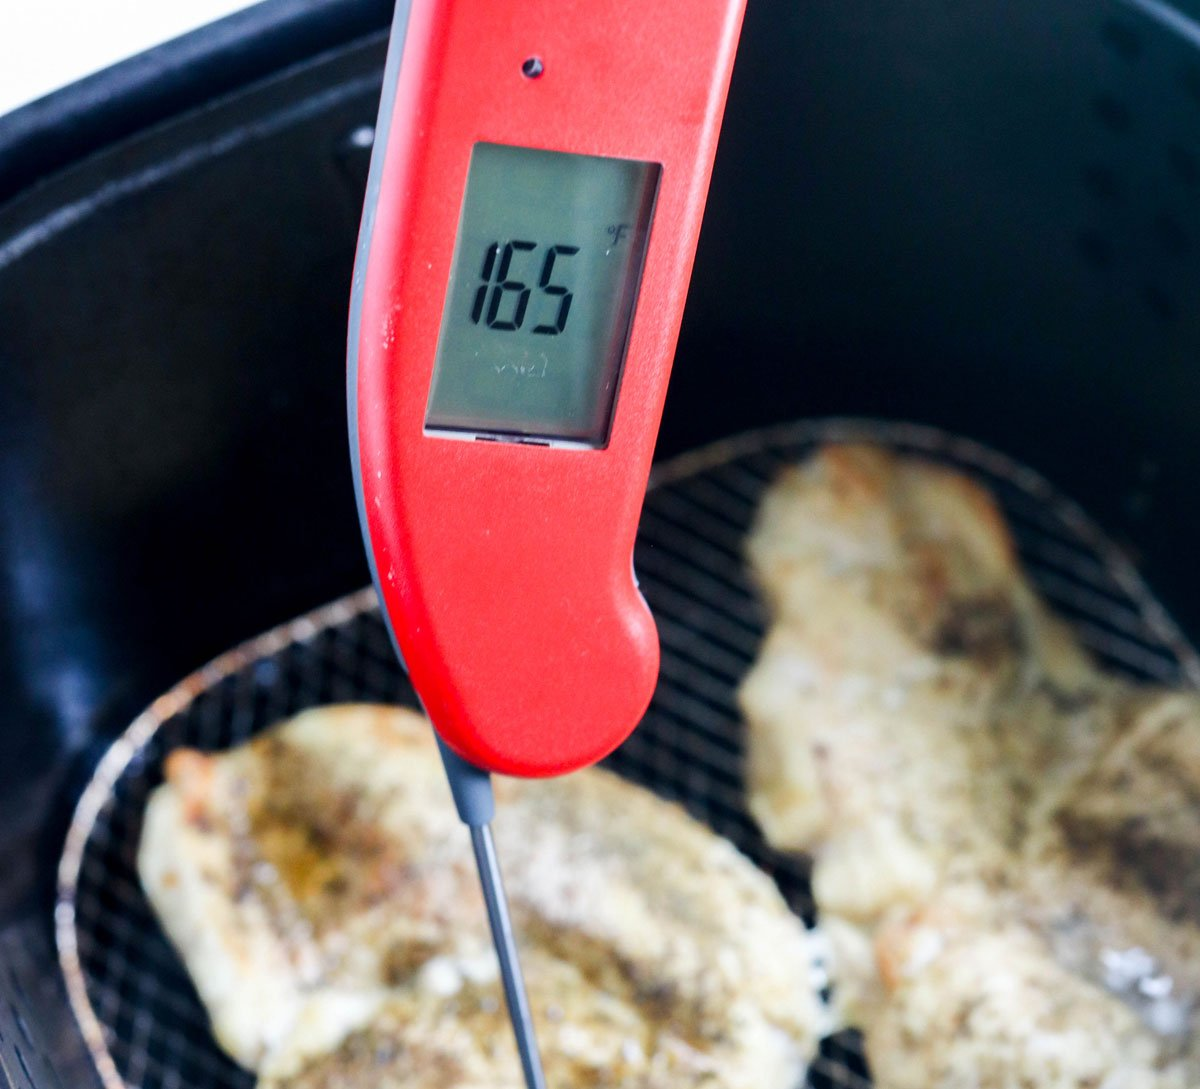 thermometer in chicken showing 165